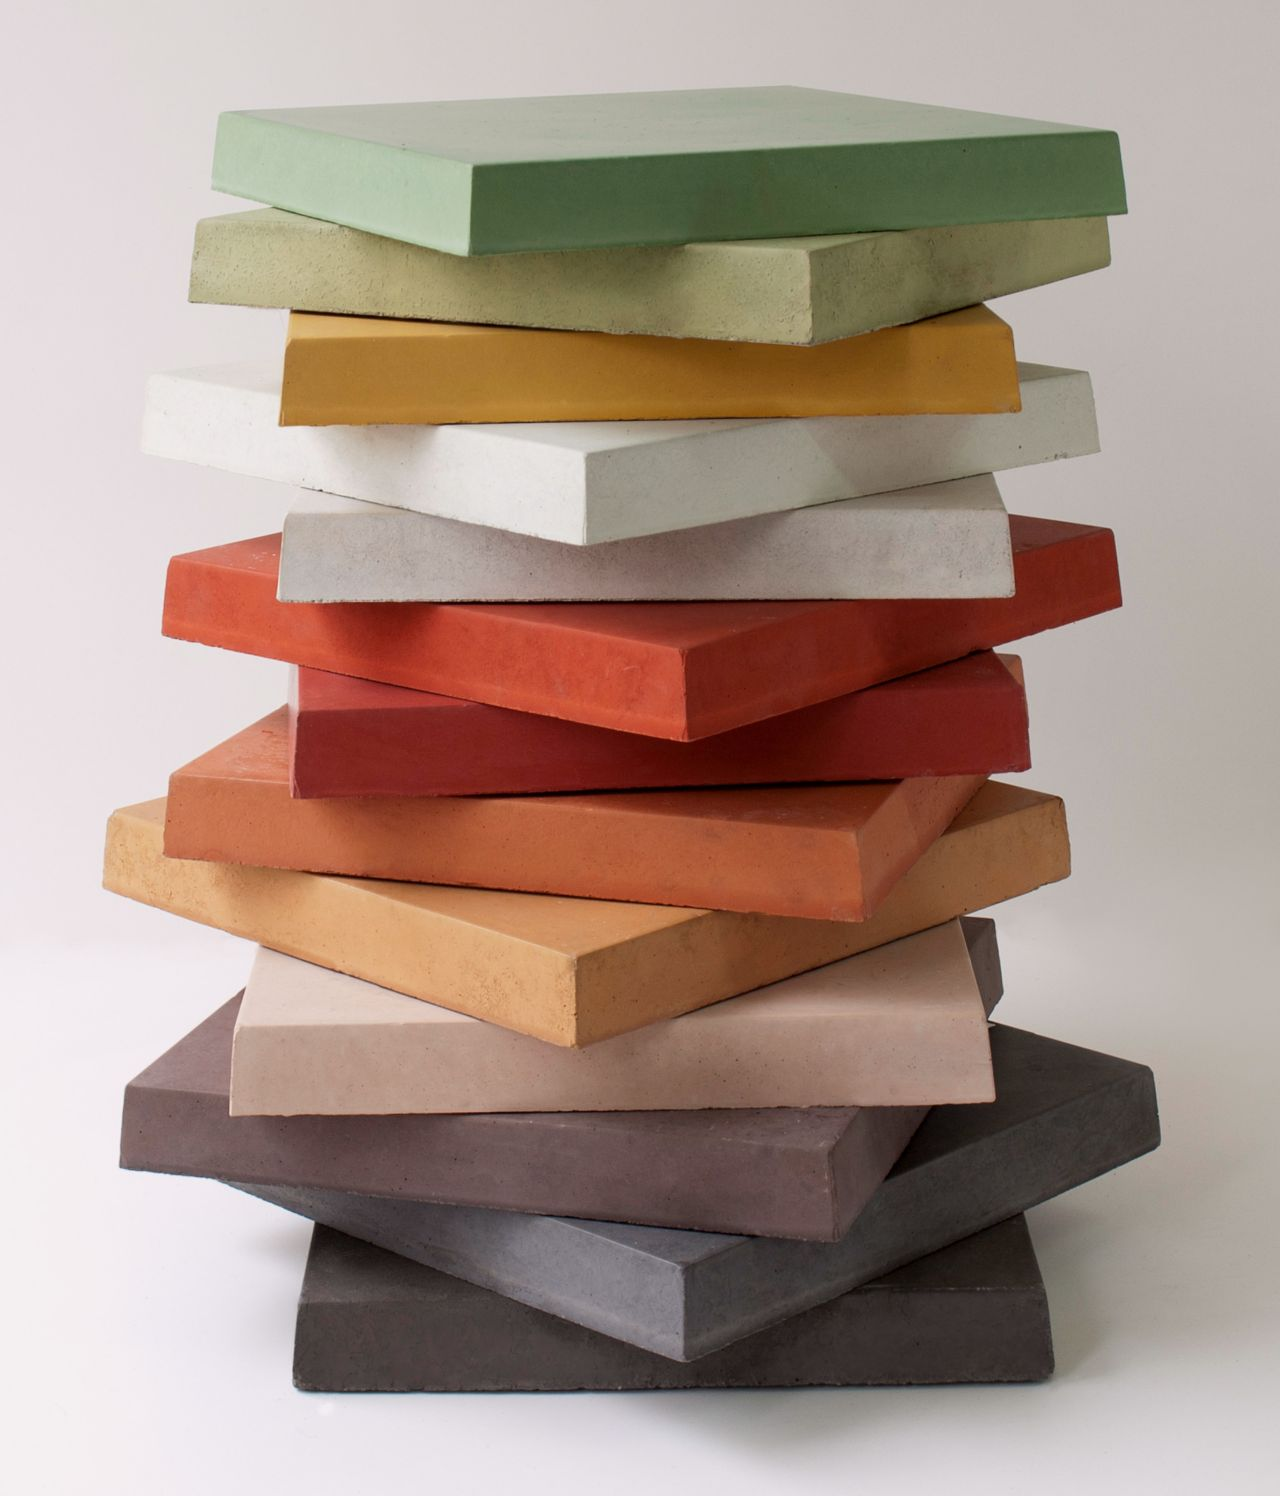 Colorful stack of concrete samples with Sika color concrete admixture in green, yellow, white, red, orange, peach, grey, charcoal and black